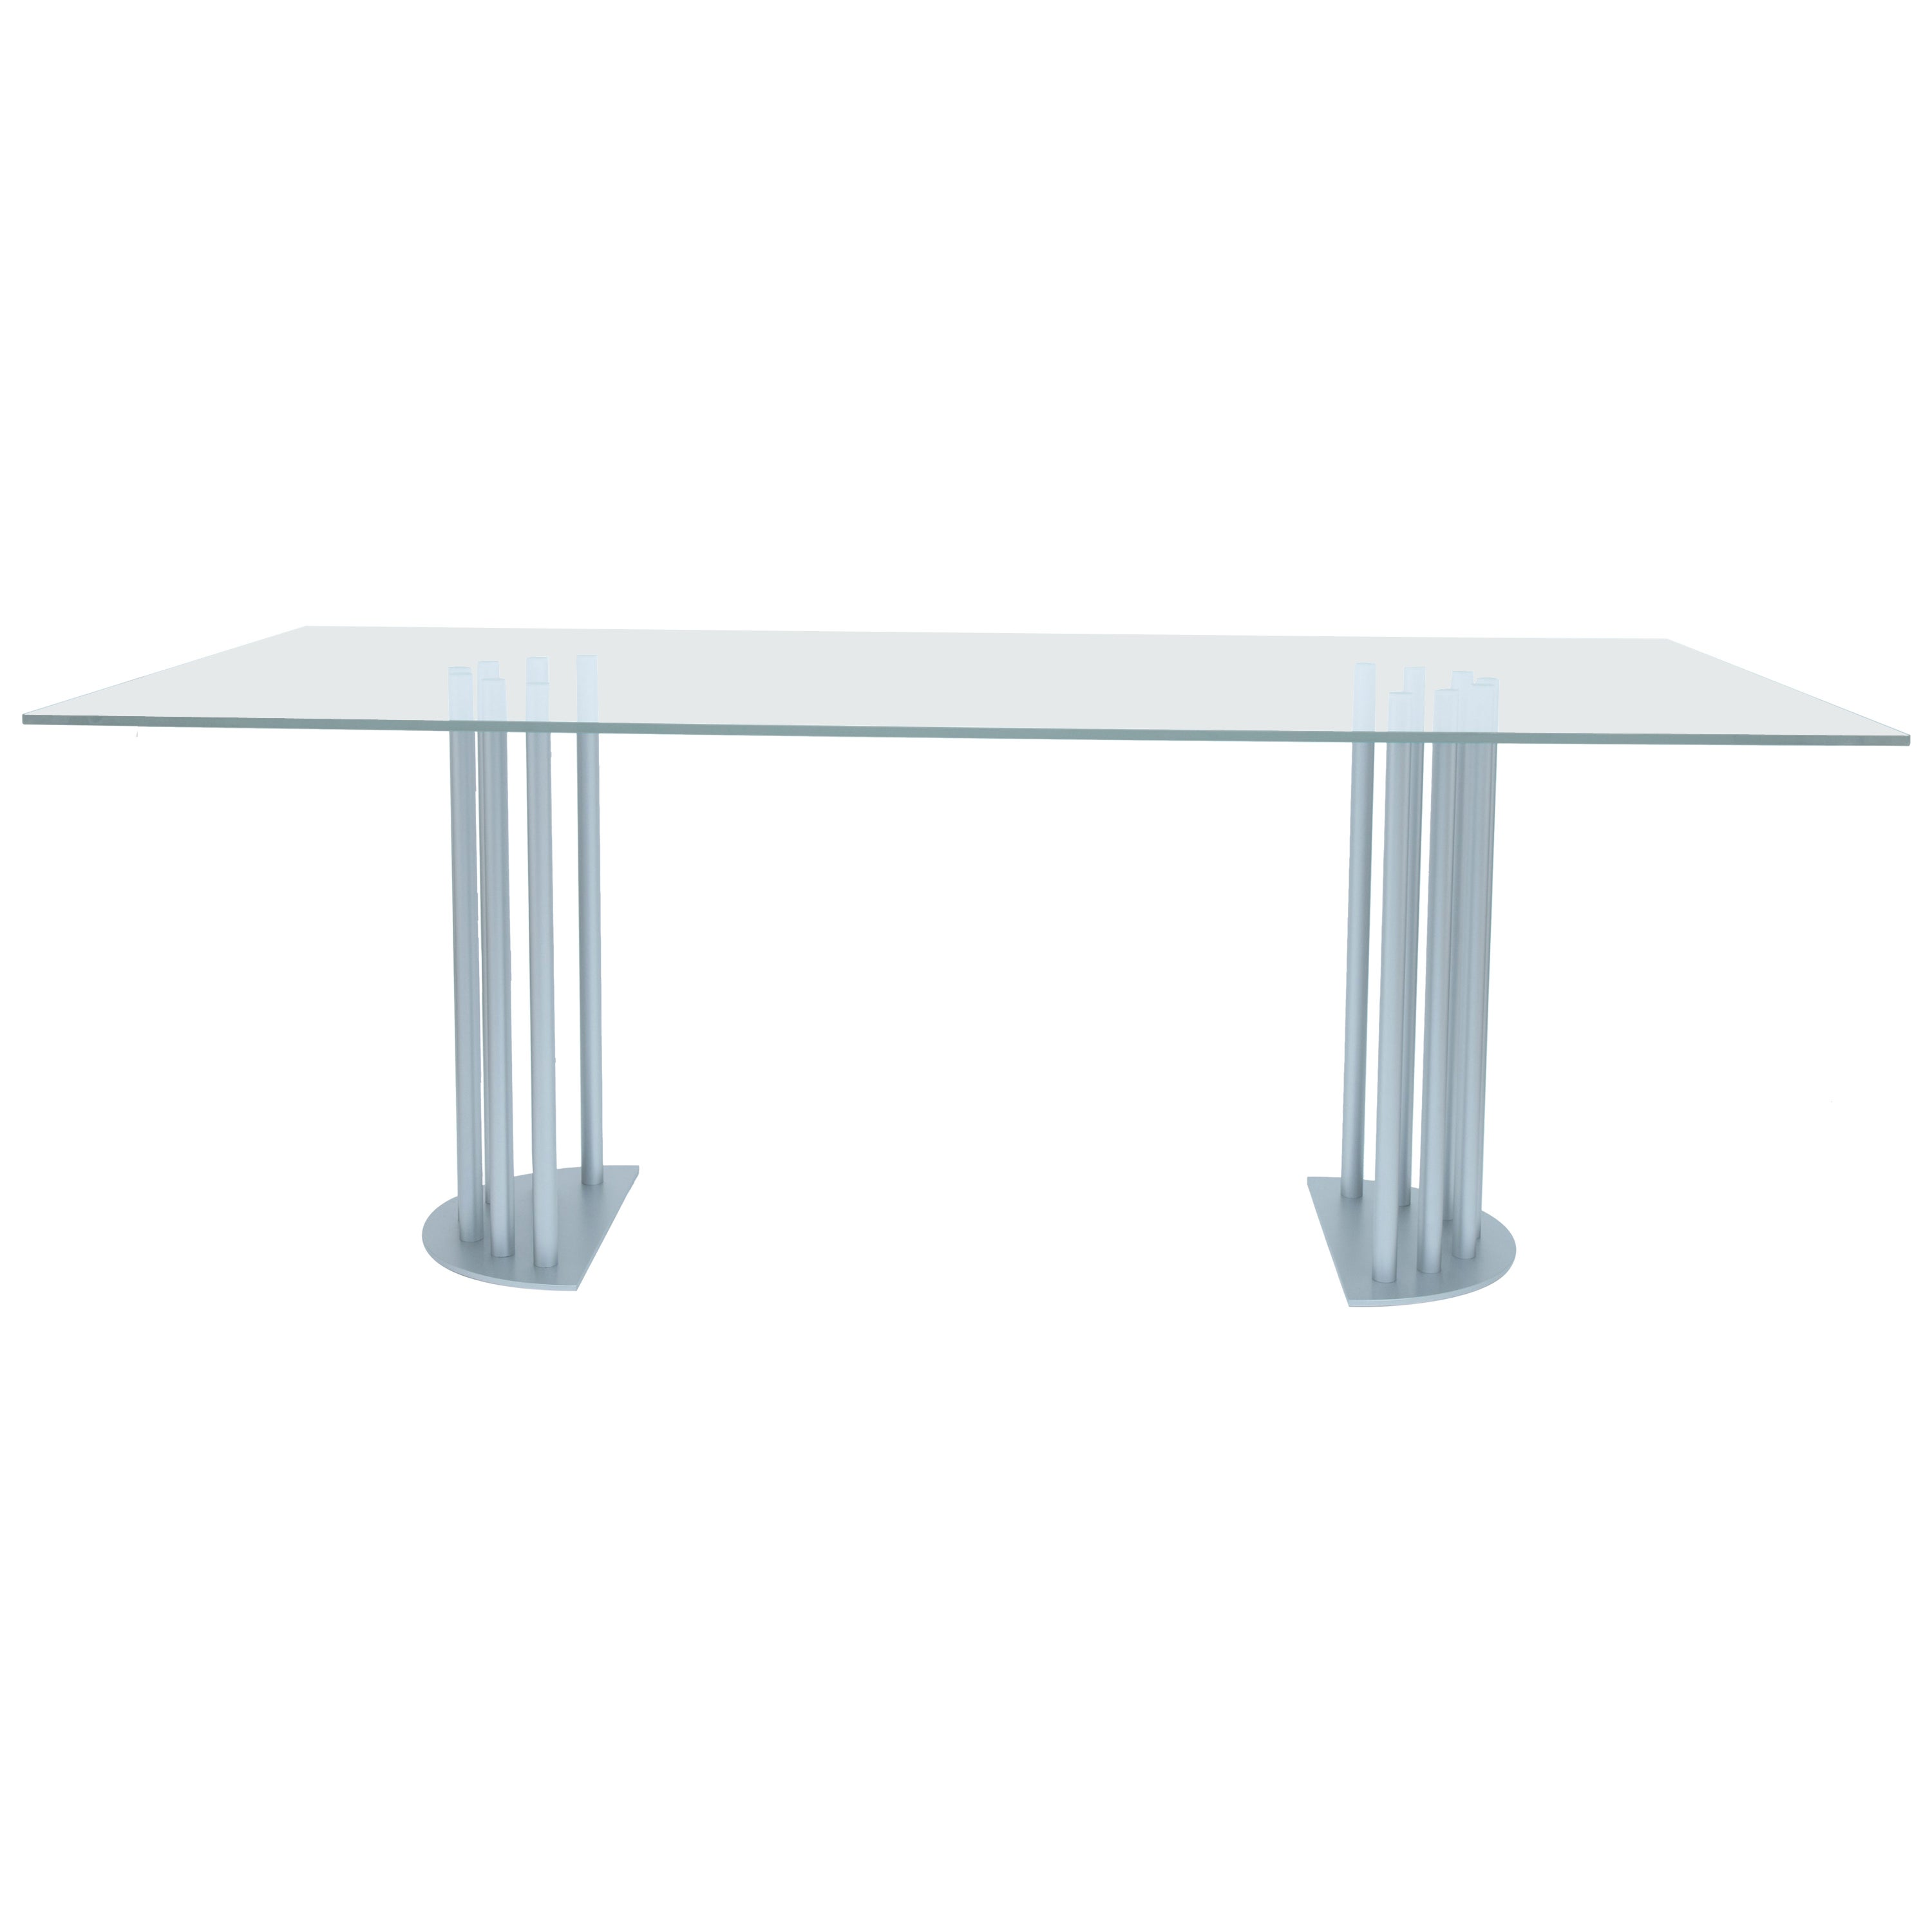 Ela Rectangular Luxury Table, Metal Half Round Base and Glass Top, Made in Italy